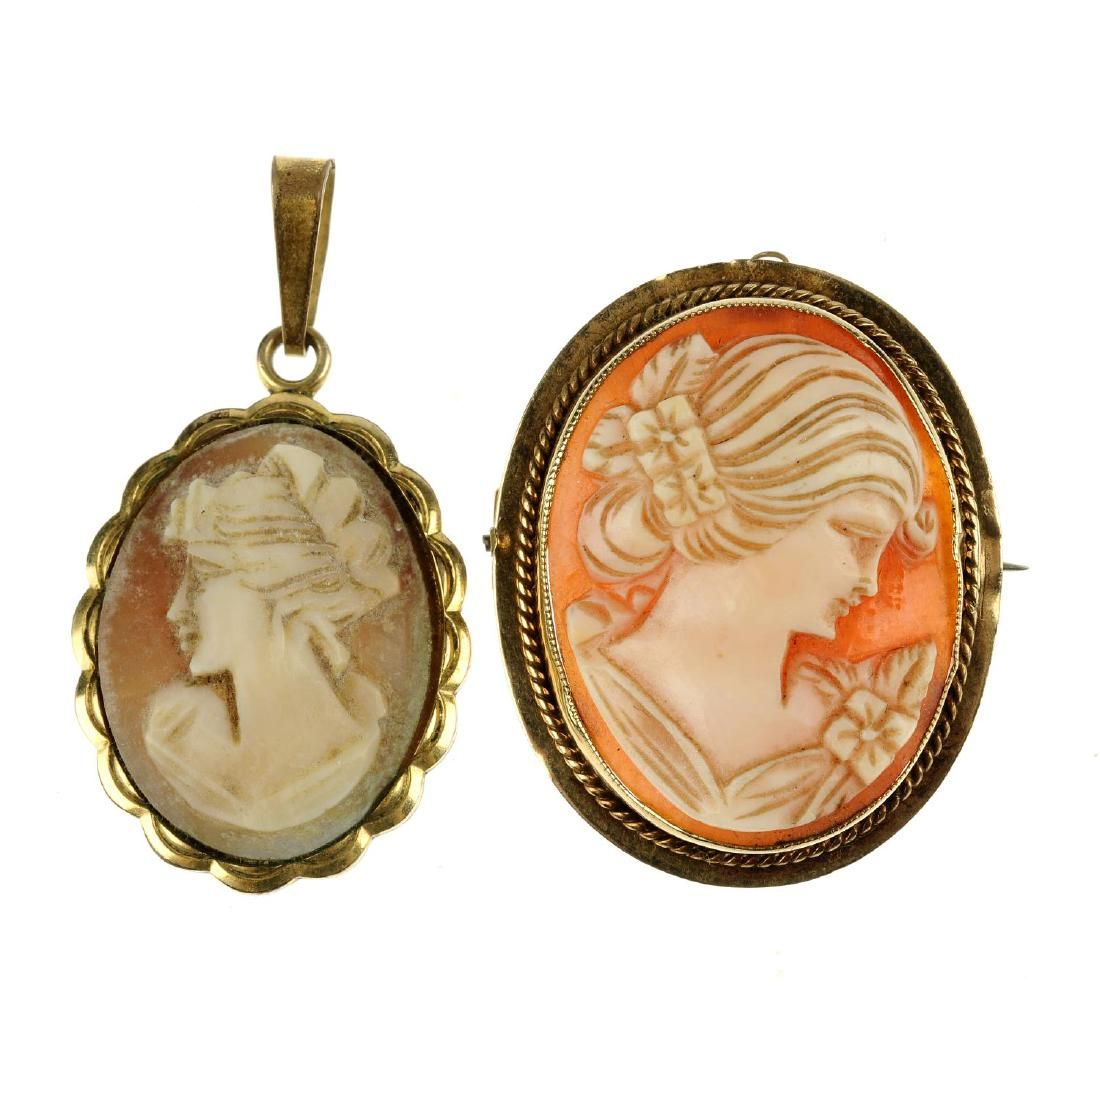 Five cameo pieces. To include a shell cameo pendant